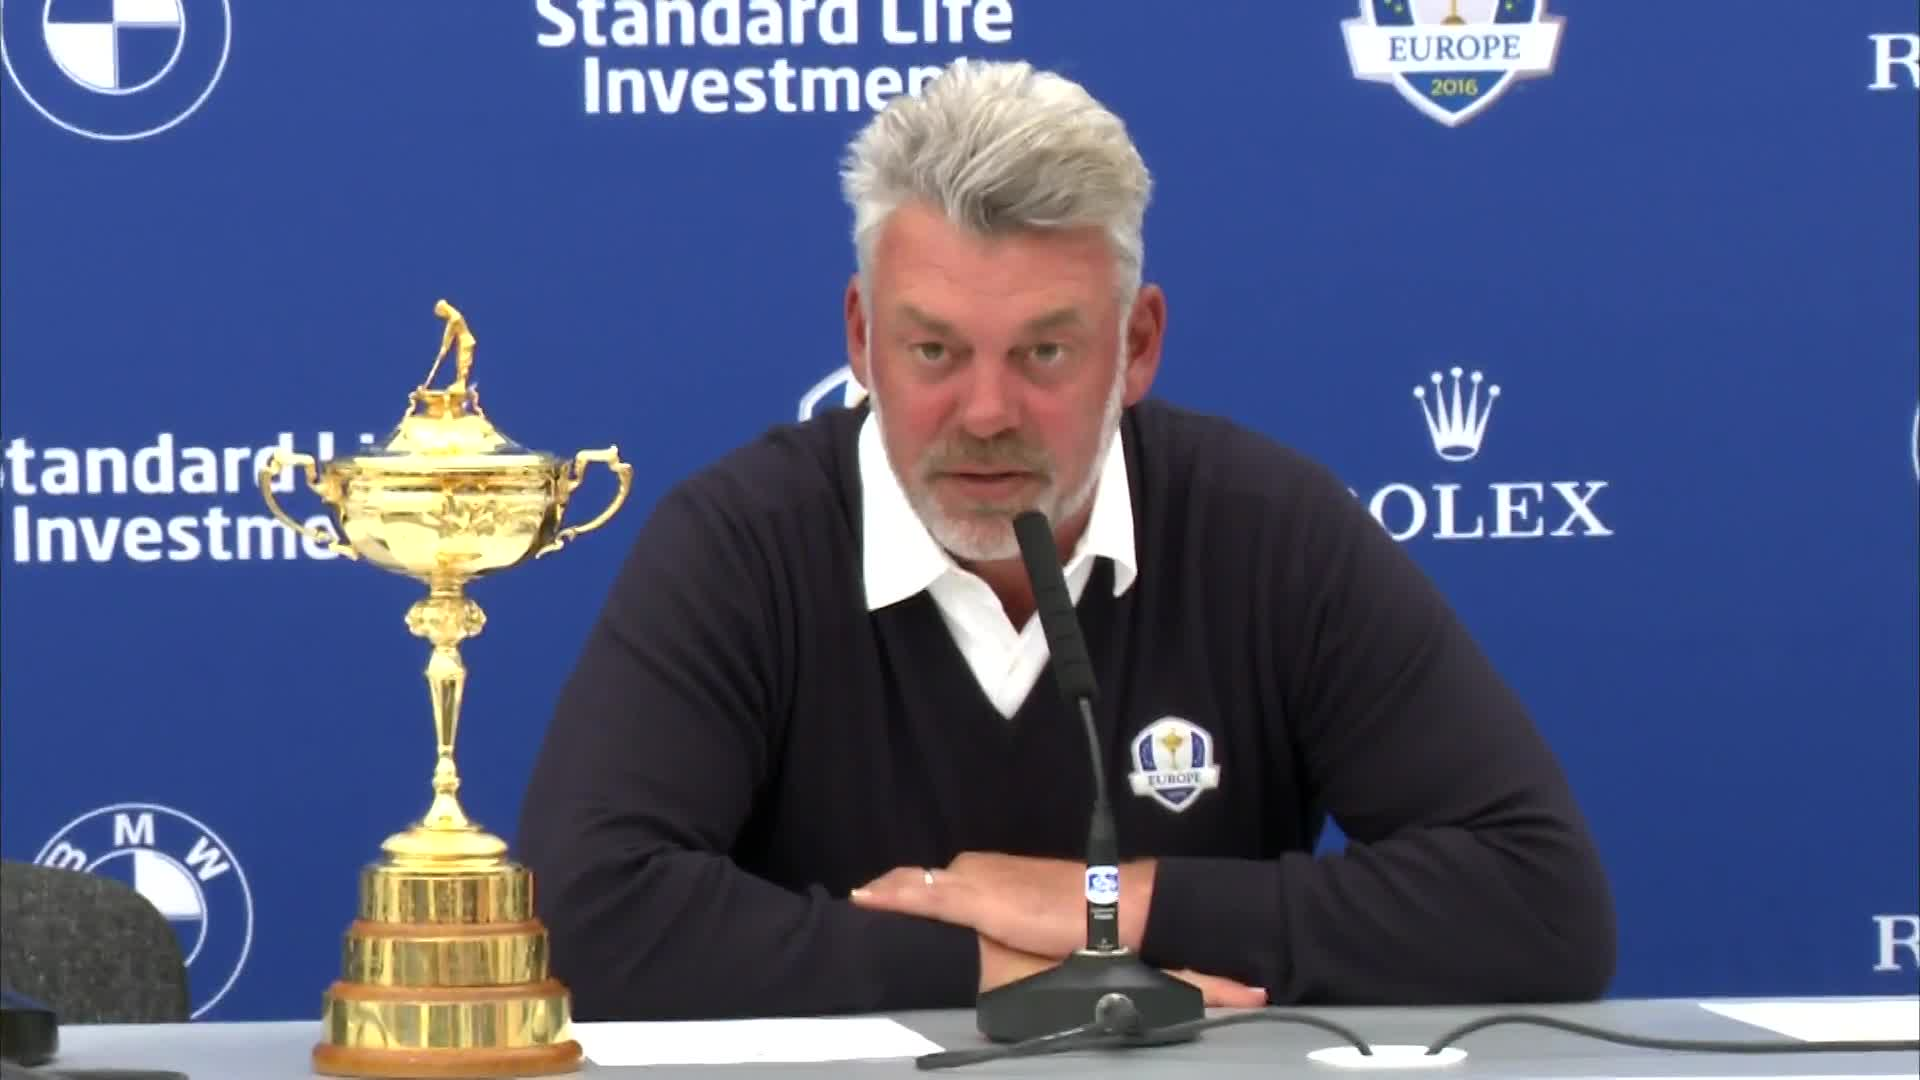 Darren Clarke, European Ryder Cup fulfilling one of many media obligations leading up to September's competition.